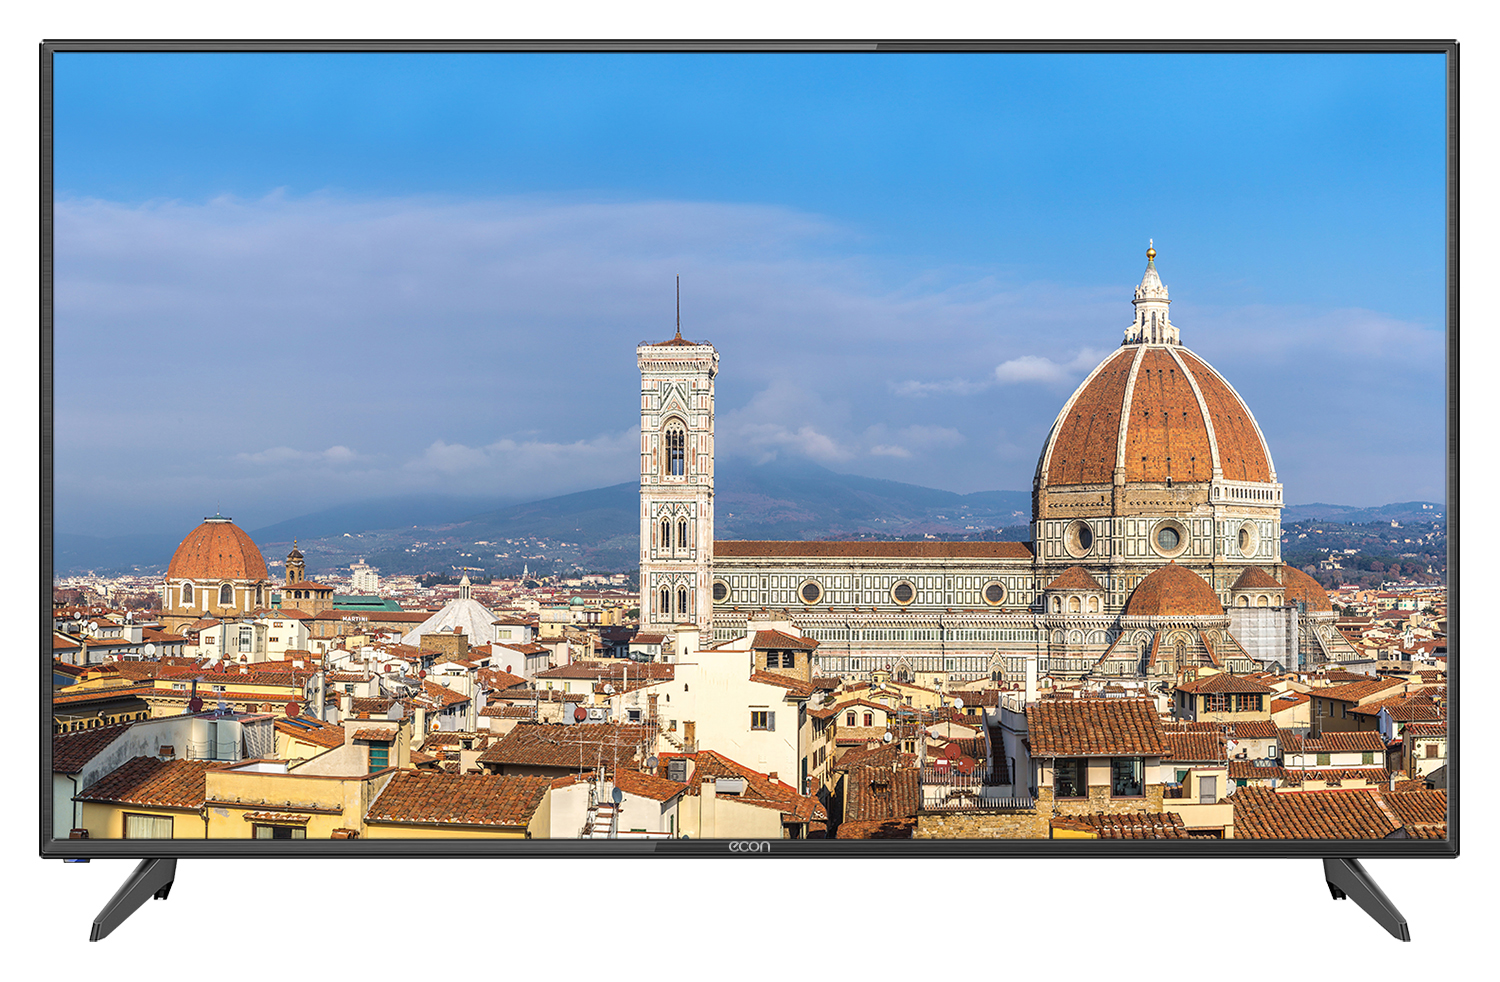 "Телевизор ECON EX-50FS001B LED 50"" Black, Smart TV, 16:9, 1920x1080, 160000:1, 300 кд/м2, USB, HDMI, VGA, AV, Wi-Fi, RJ-45, DVB-T2, C, S, S2"